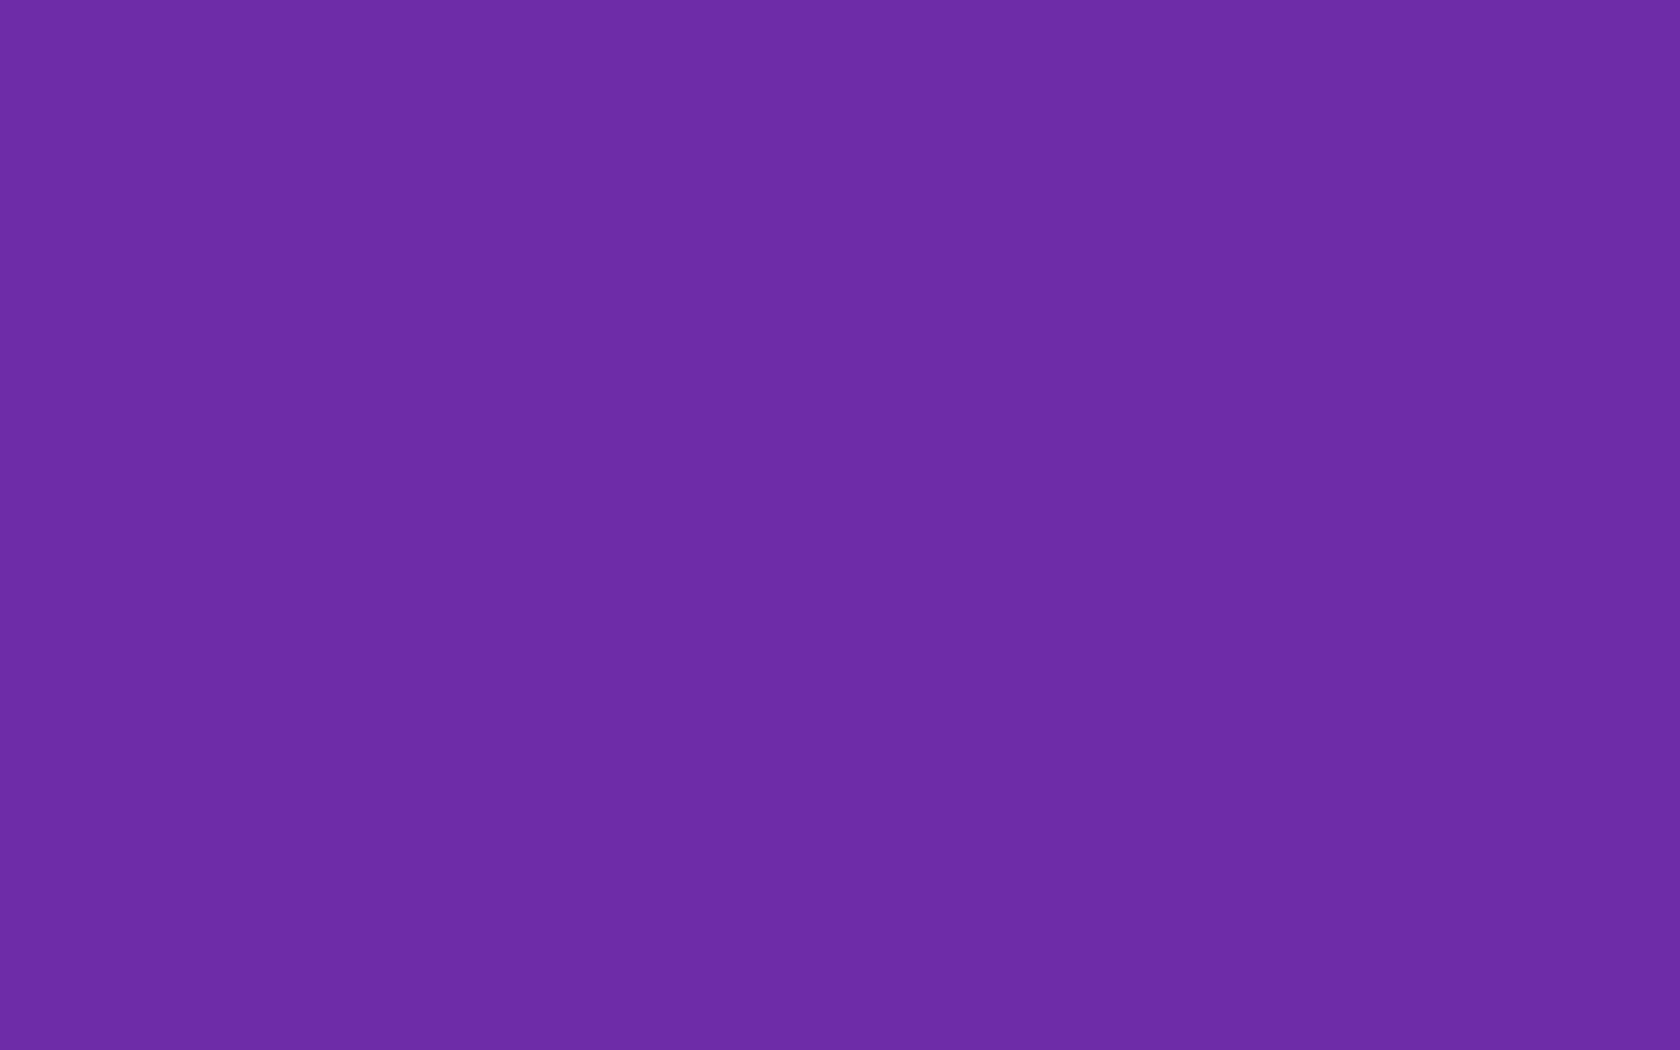 1680x1050 Grape Solid Color Background